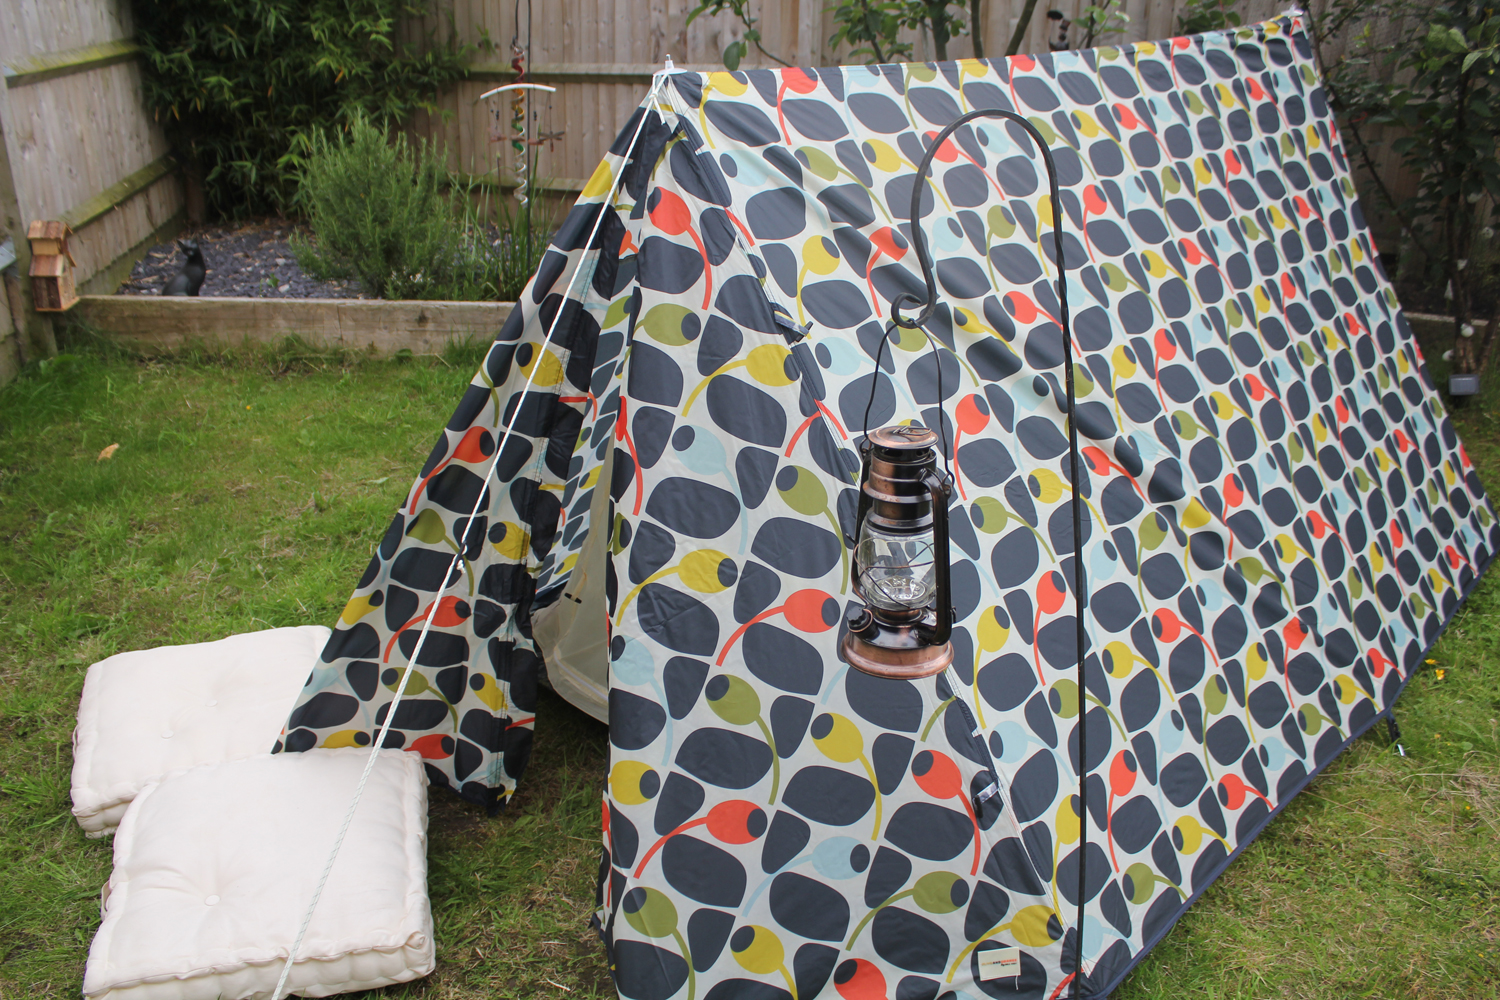 Orla Kiely A Frame Tent Review & Orla Kiely Design A Frame Tent from Halfords